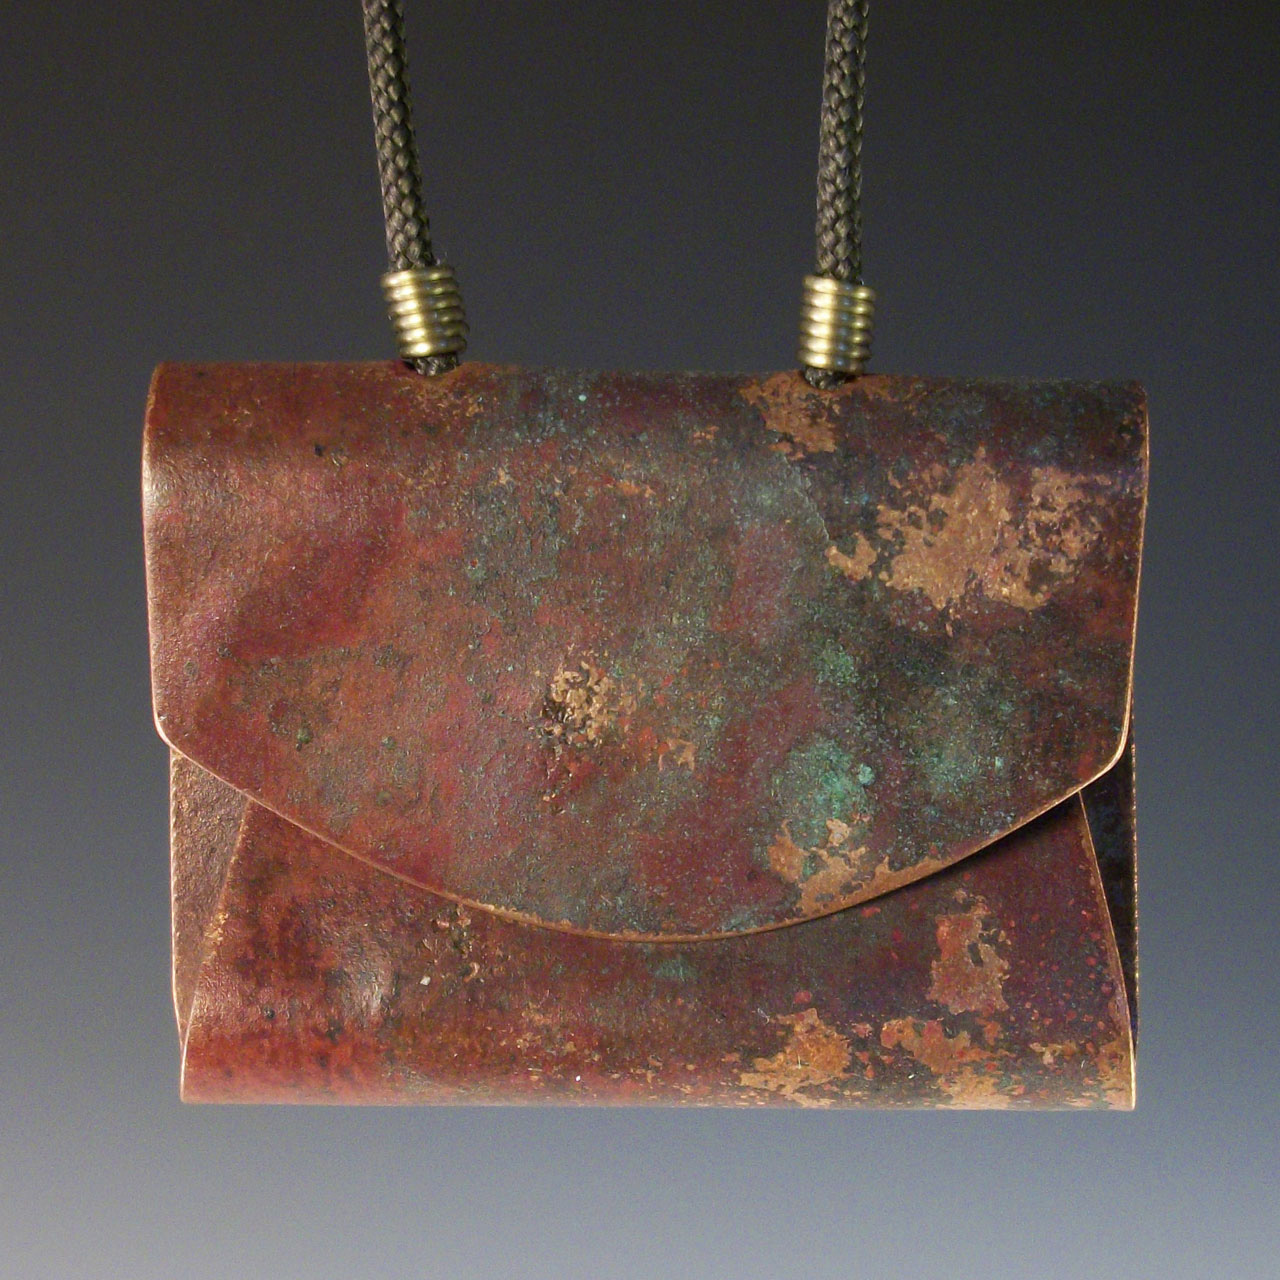 Copper Pocketbook by Mckenna Hallett